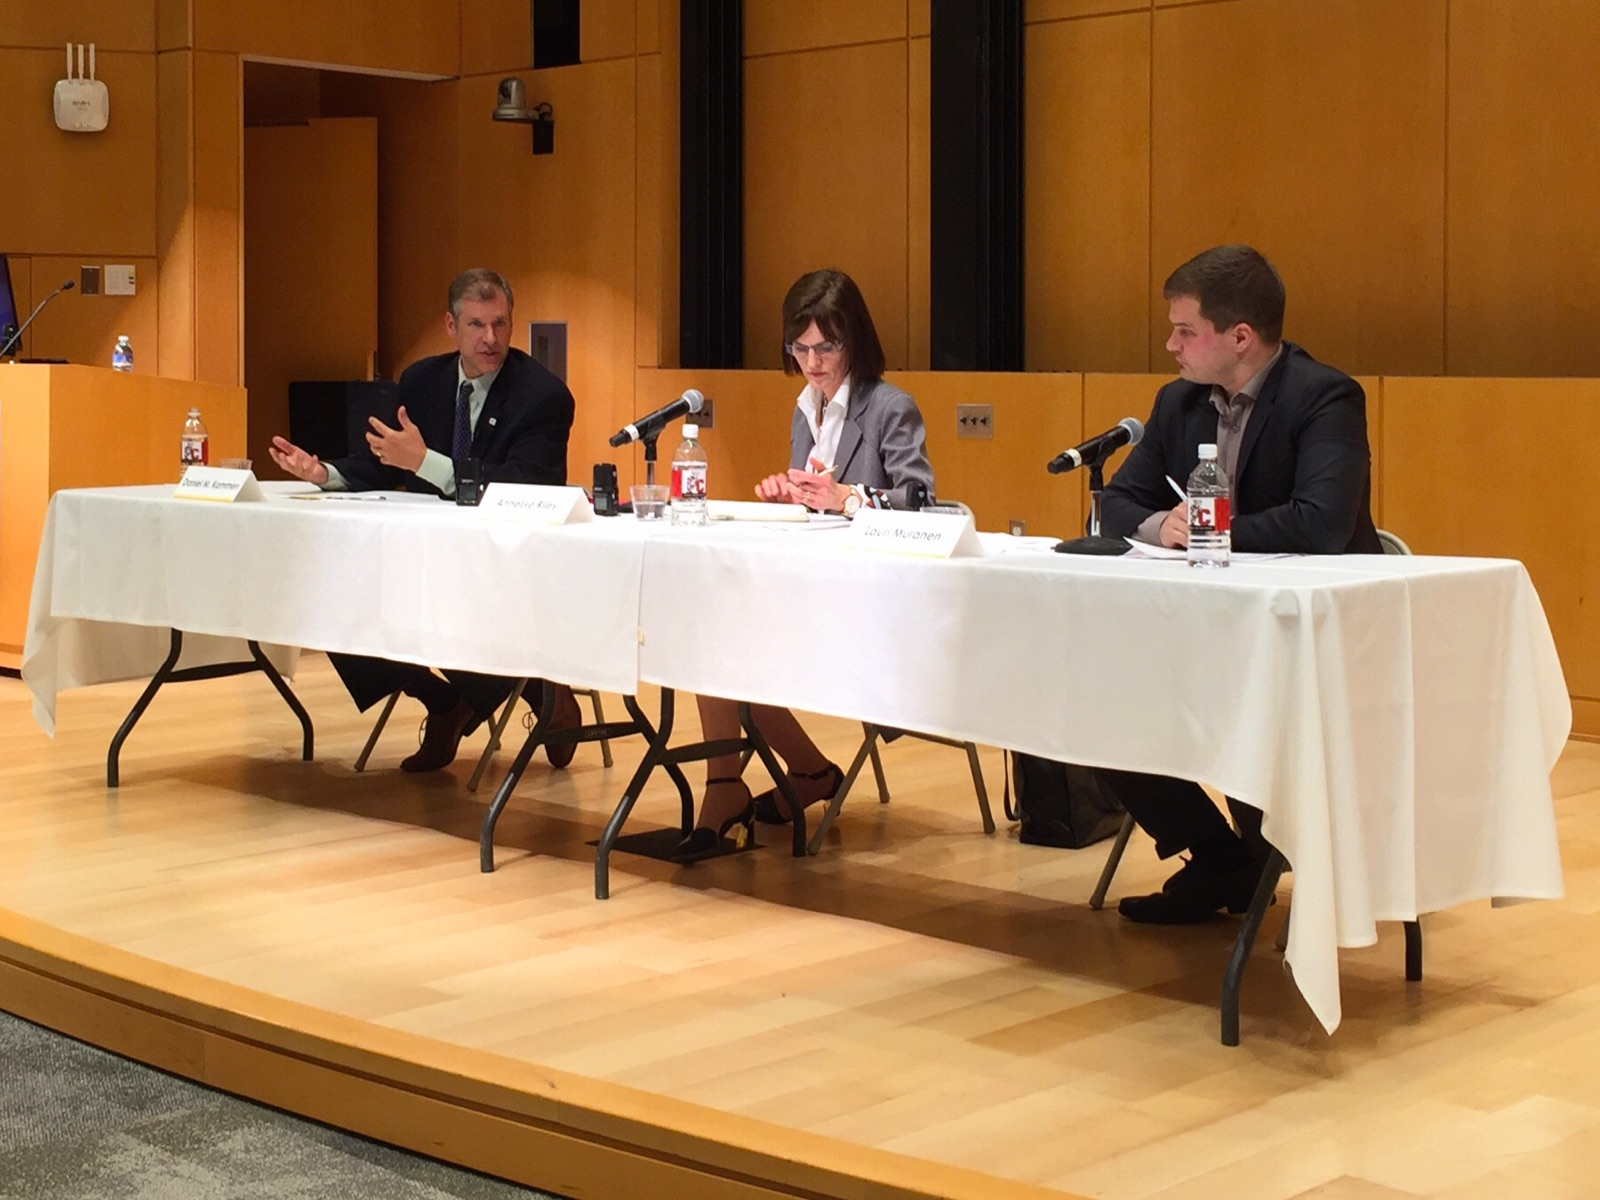 Daniel Kammen (left) debates with Lauri Muranen (right) on the future of nuclear. Annelise Riles of the Cornell Law School. Photo by Geoff Johnson.